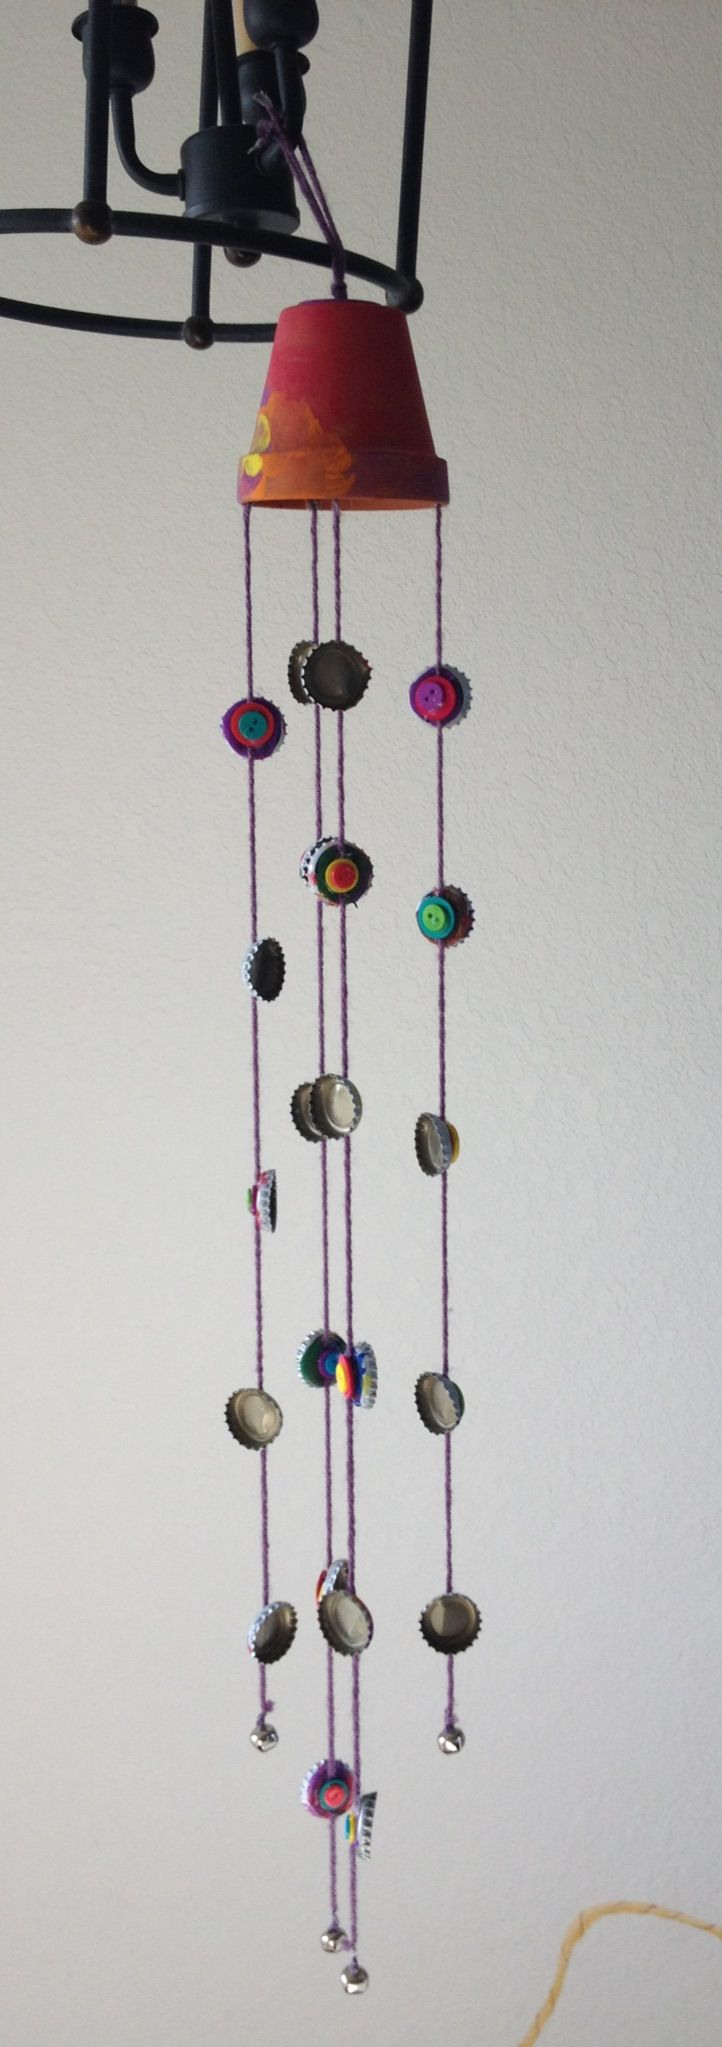 Pin by ann cushley on gardening pinterest for Homemade wind chimes for kids